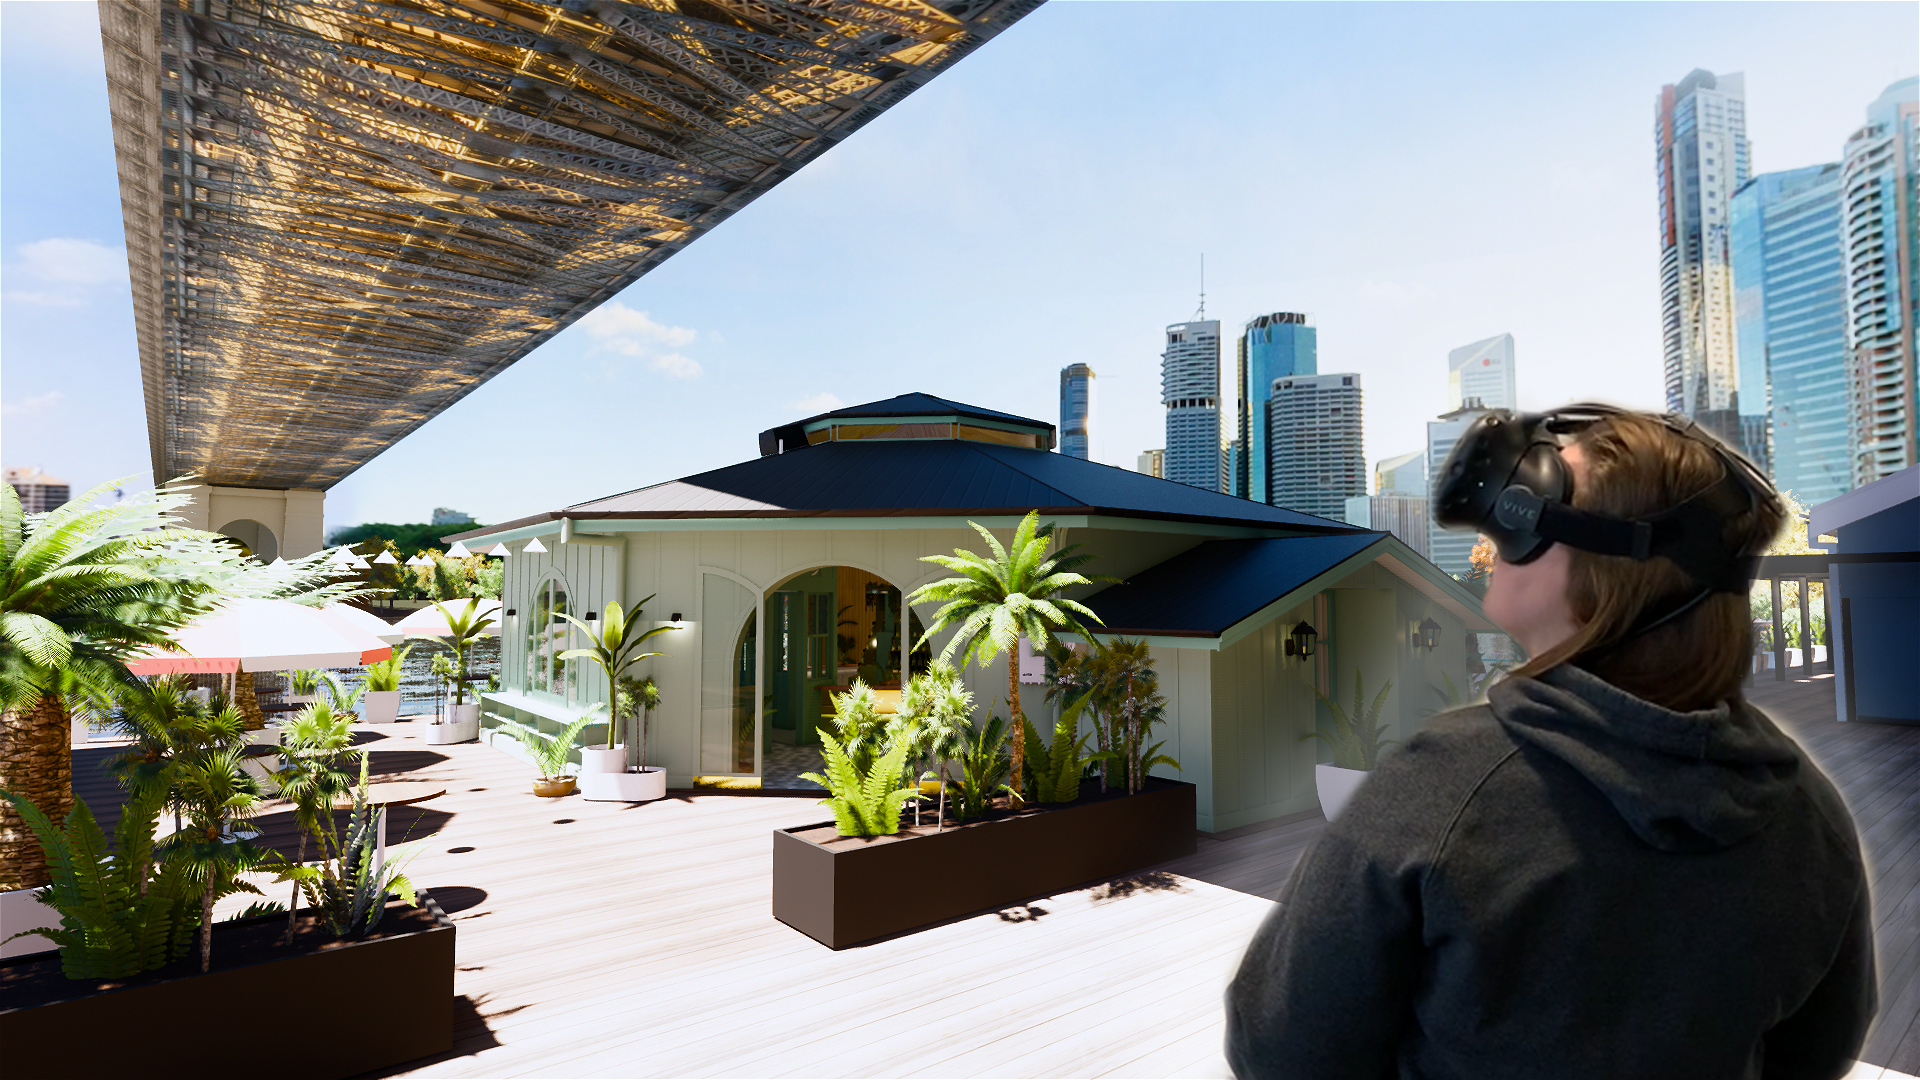 Inaspace paving the way for architecture with Virtual Reality